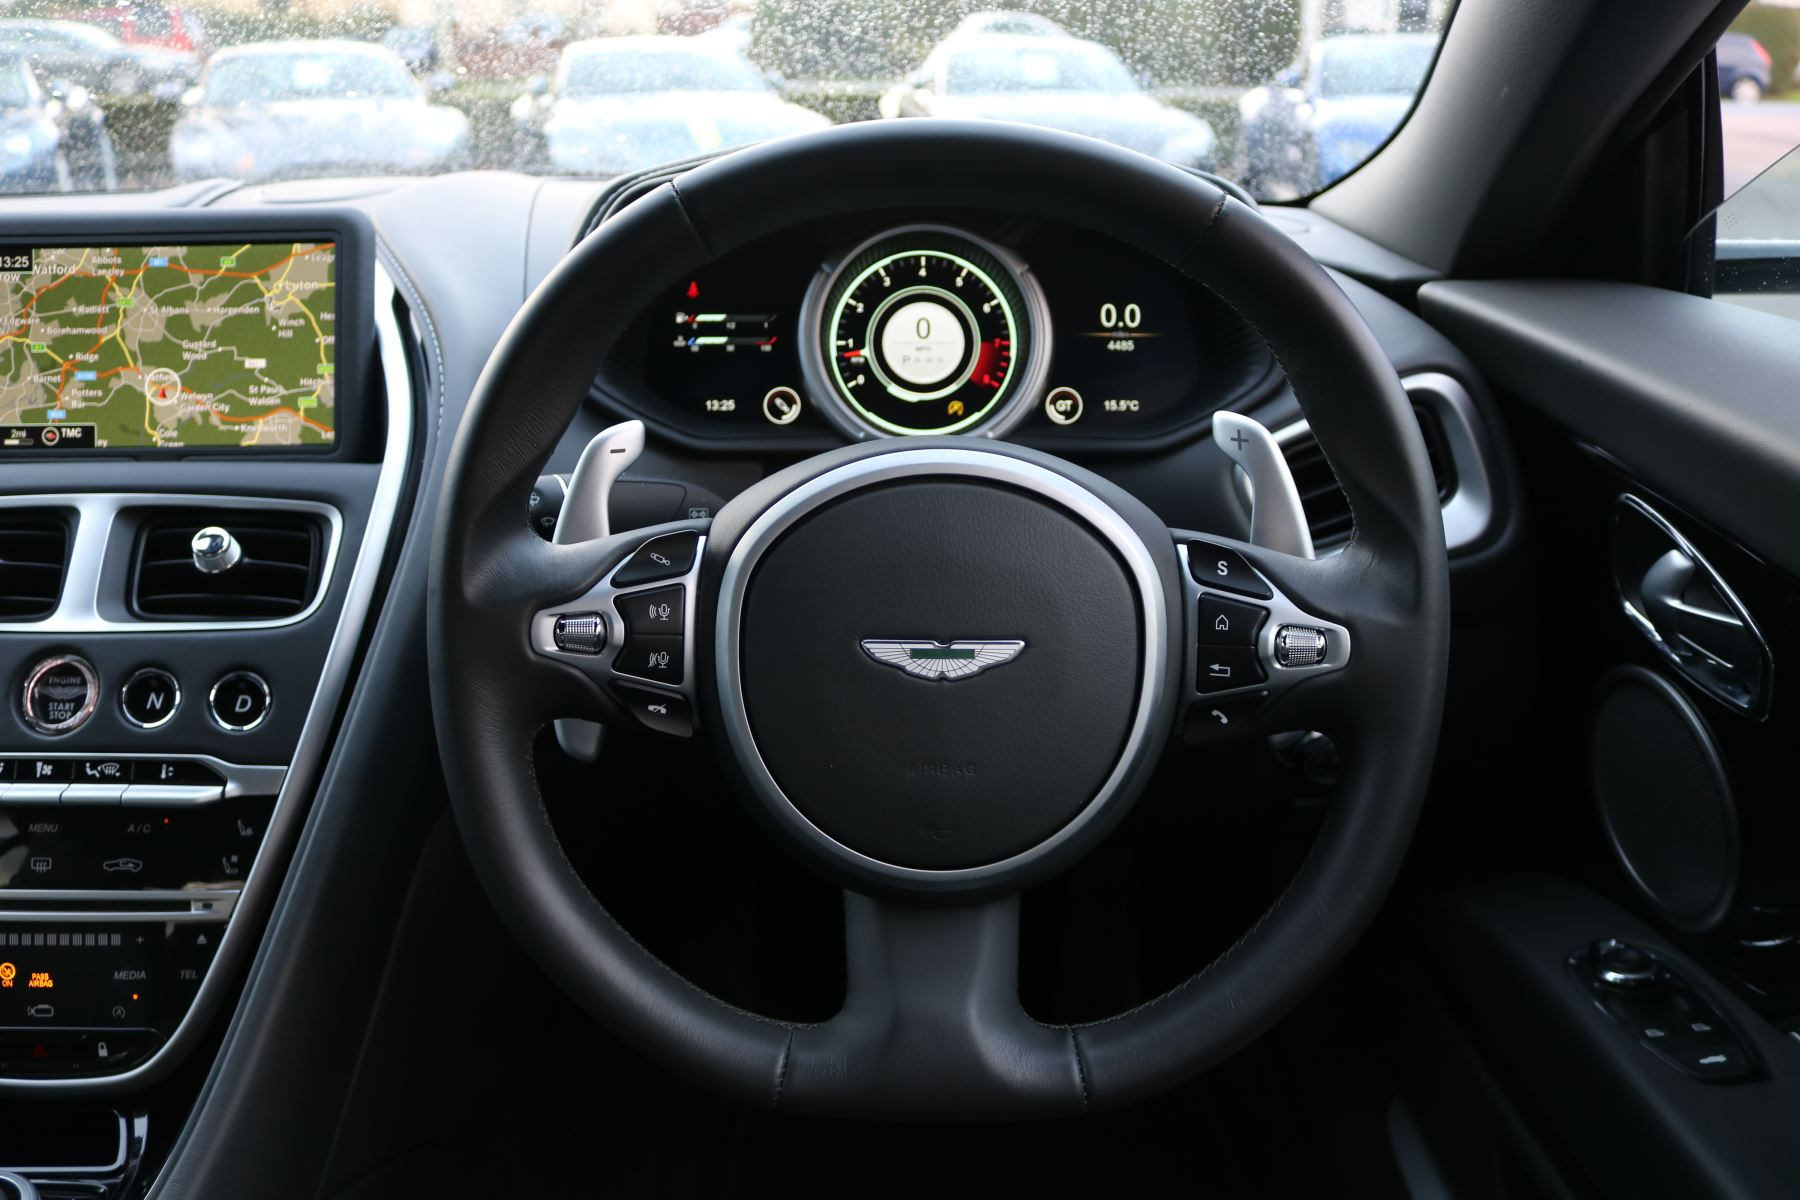 Aston Martin DB11 V12 2dr Touchtronic image 15